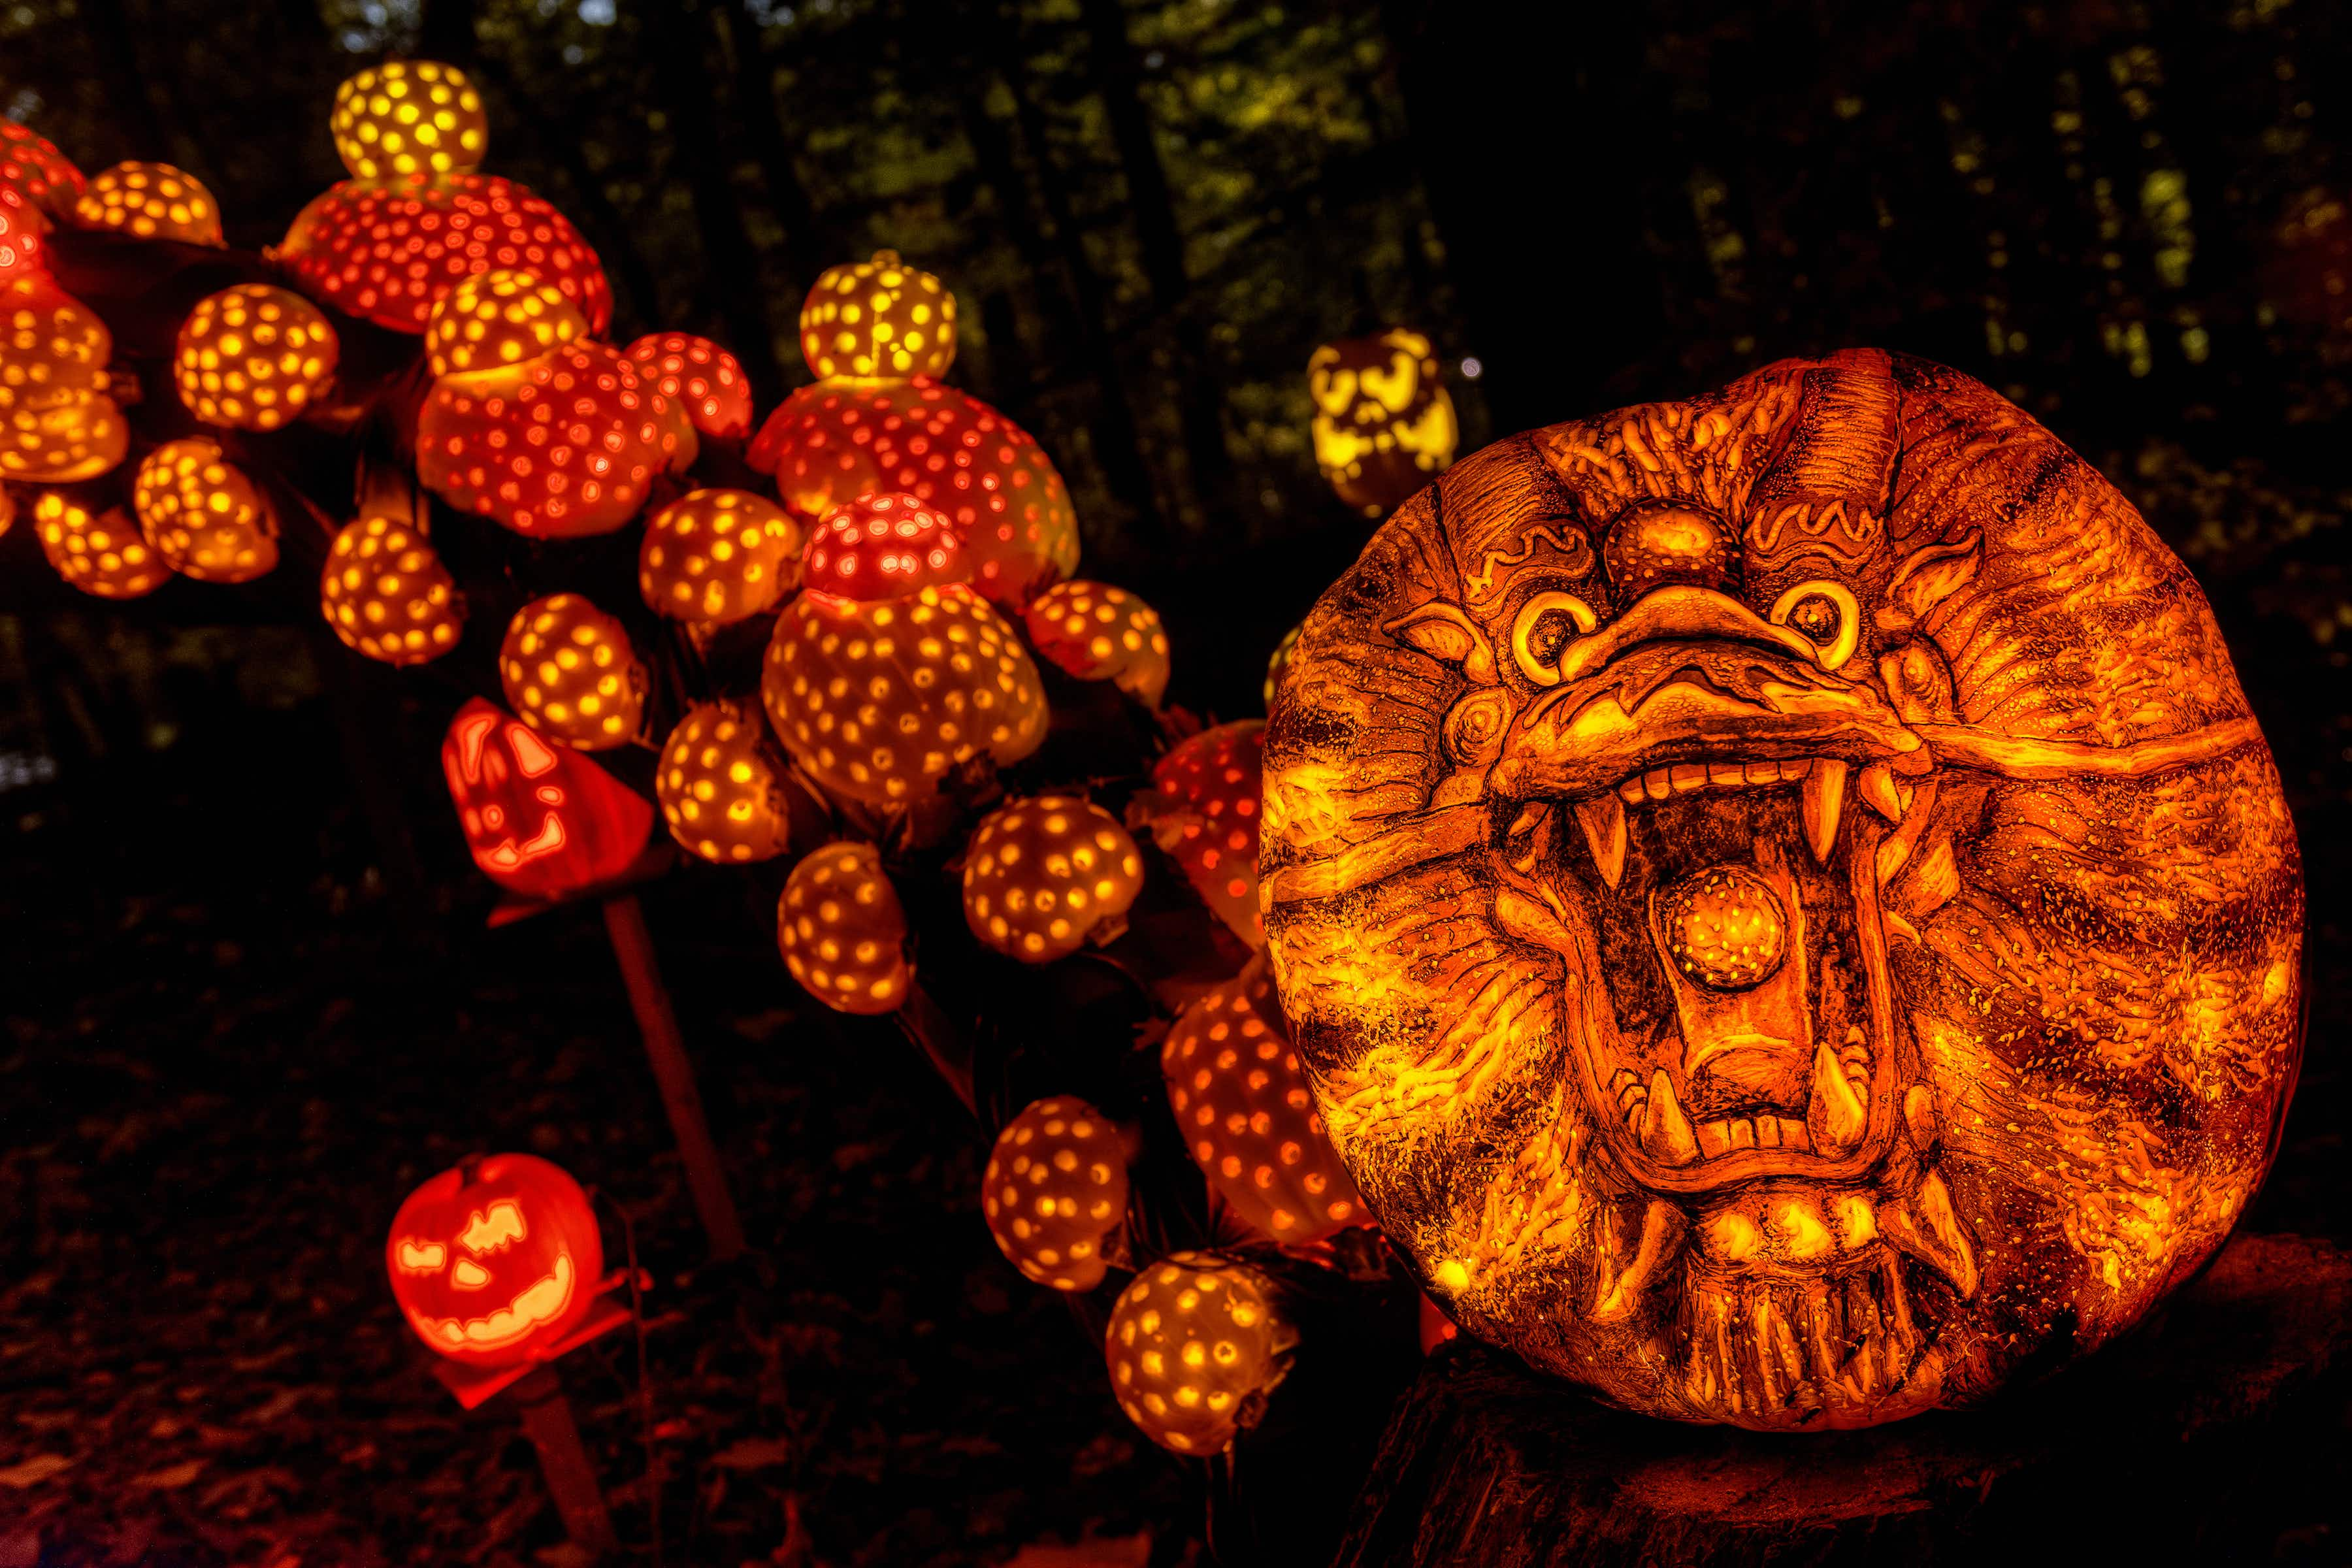 Watch pumpkins become true works of art at the Jack O'Latern Spectacular © Courtesy of Jack O' Lantern Spectacular